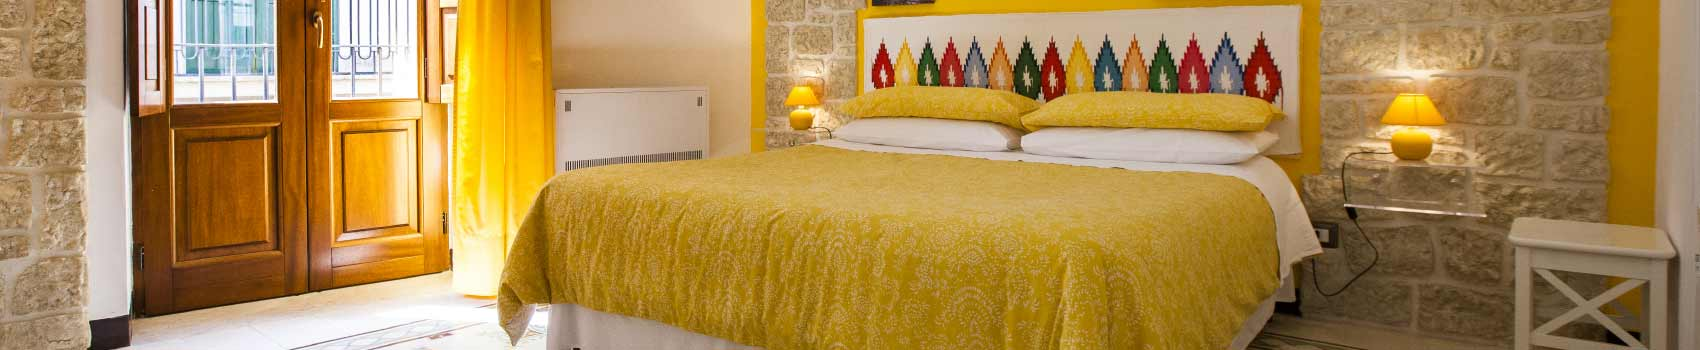 Bed & Breakfast Erice vetta